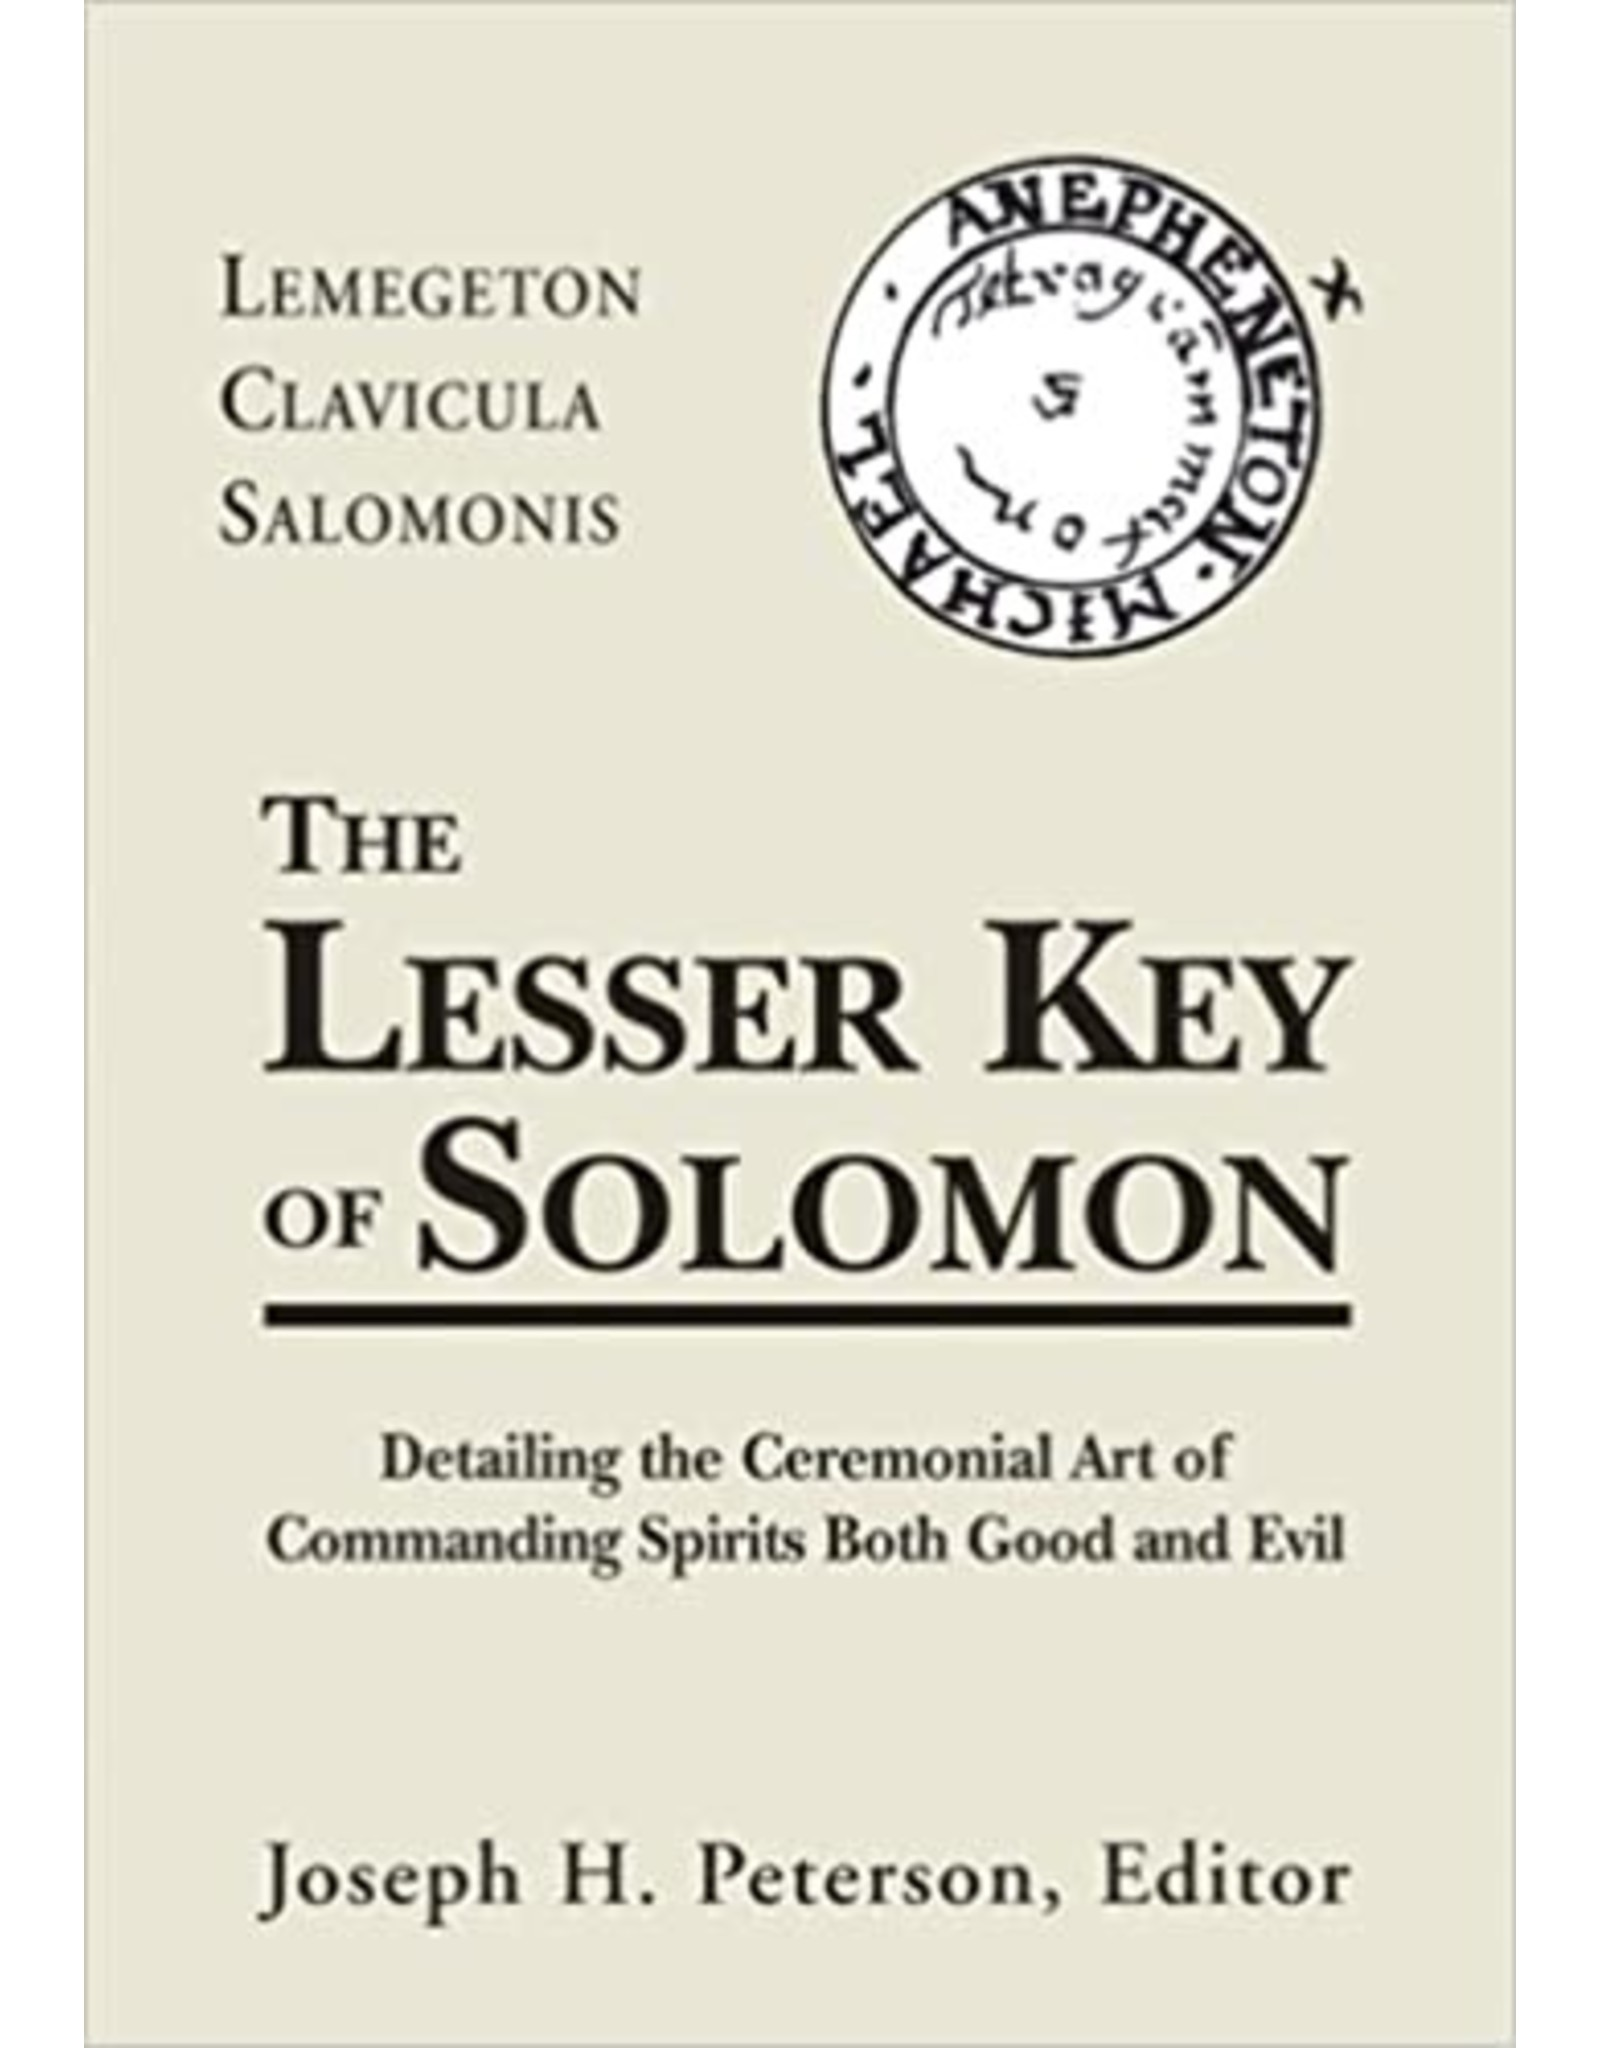 Lemegeton Clavicula Salomonis: The Lesser Key of Solomon